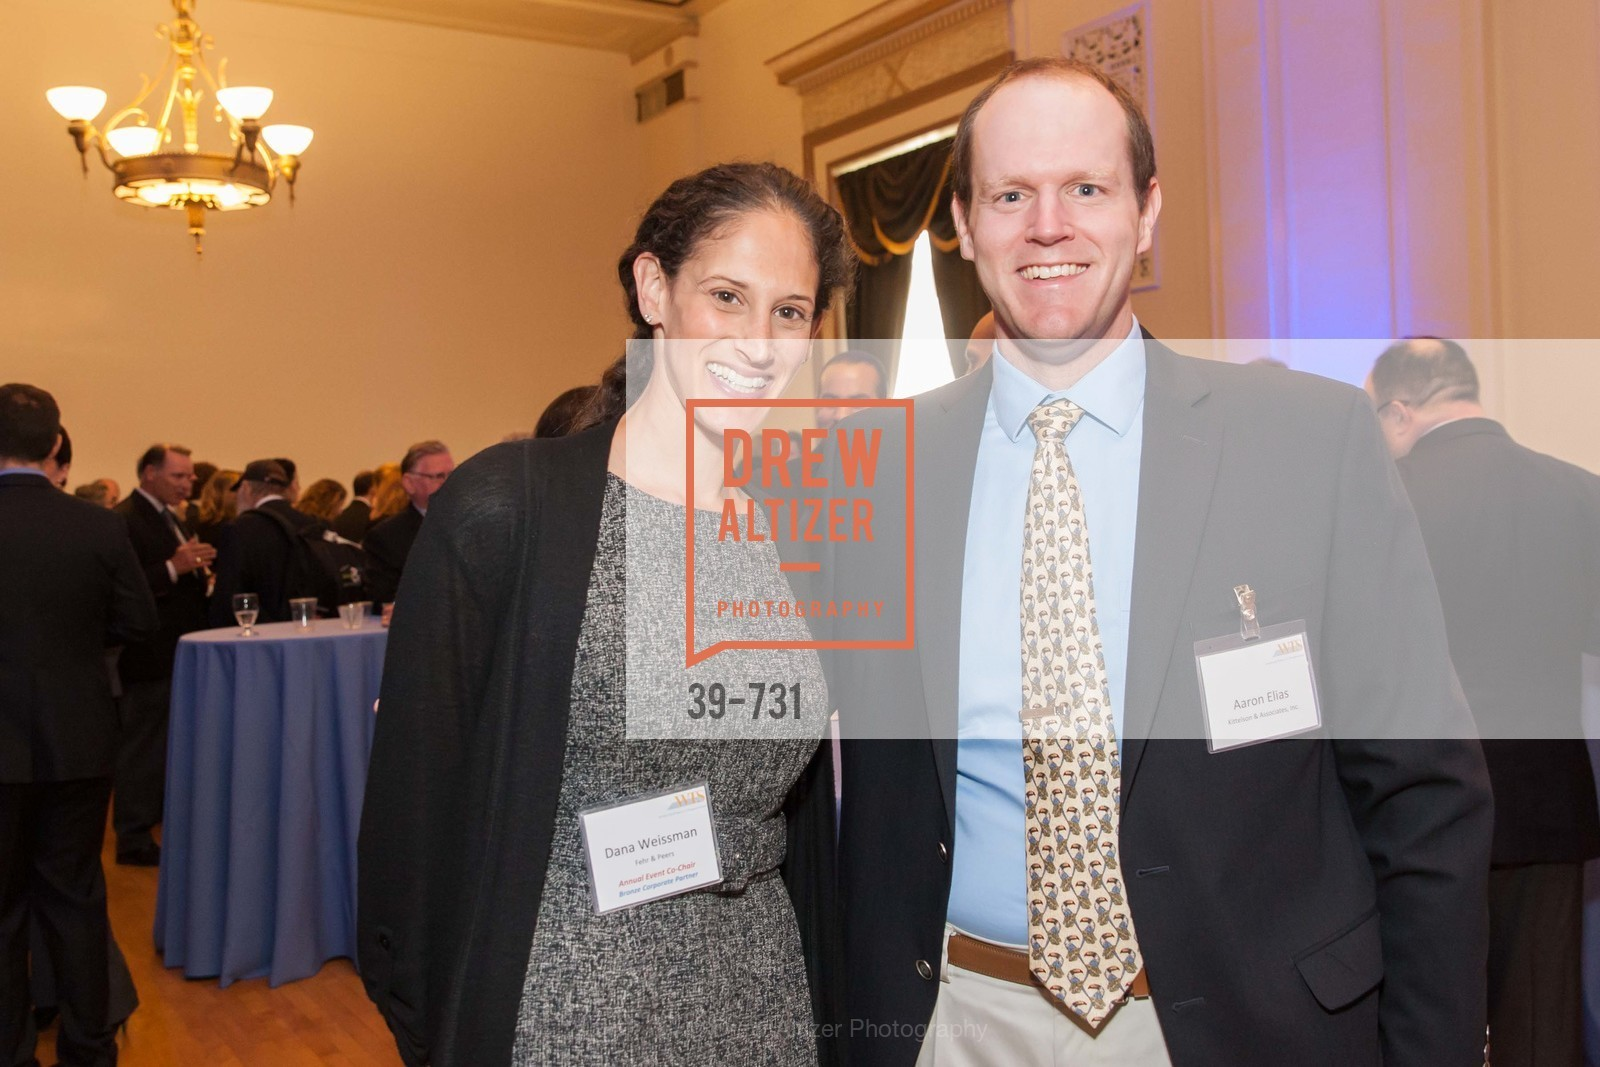 Tina Weissman, Aaron Elias, WOMEN'S TRANSPORTATION SEMINAR SF Bay Area Chapter Annual Scholarship Awards, US, May 15th, 2015,Drew Altizer, Drew Altizer Photography, full-service agency, private events, San Francisco photographer, photographer california